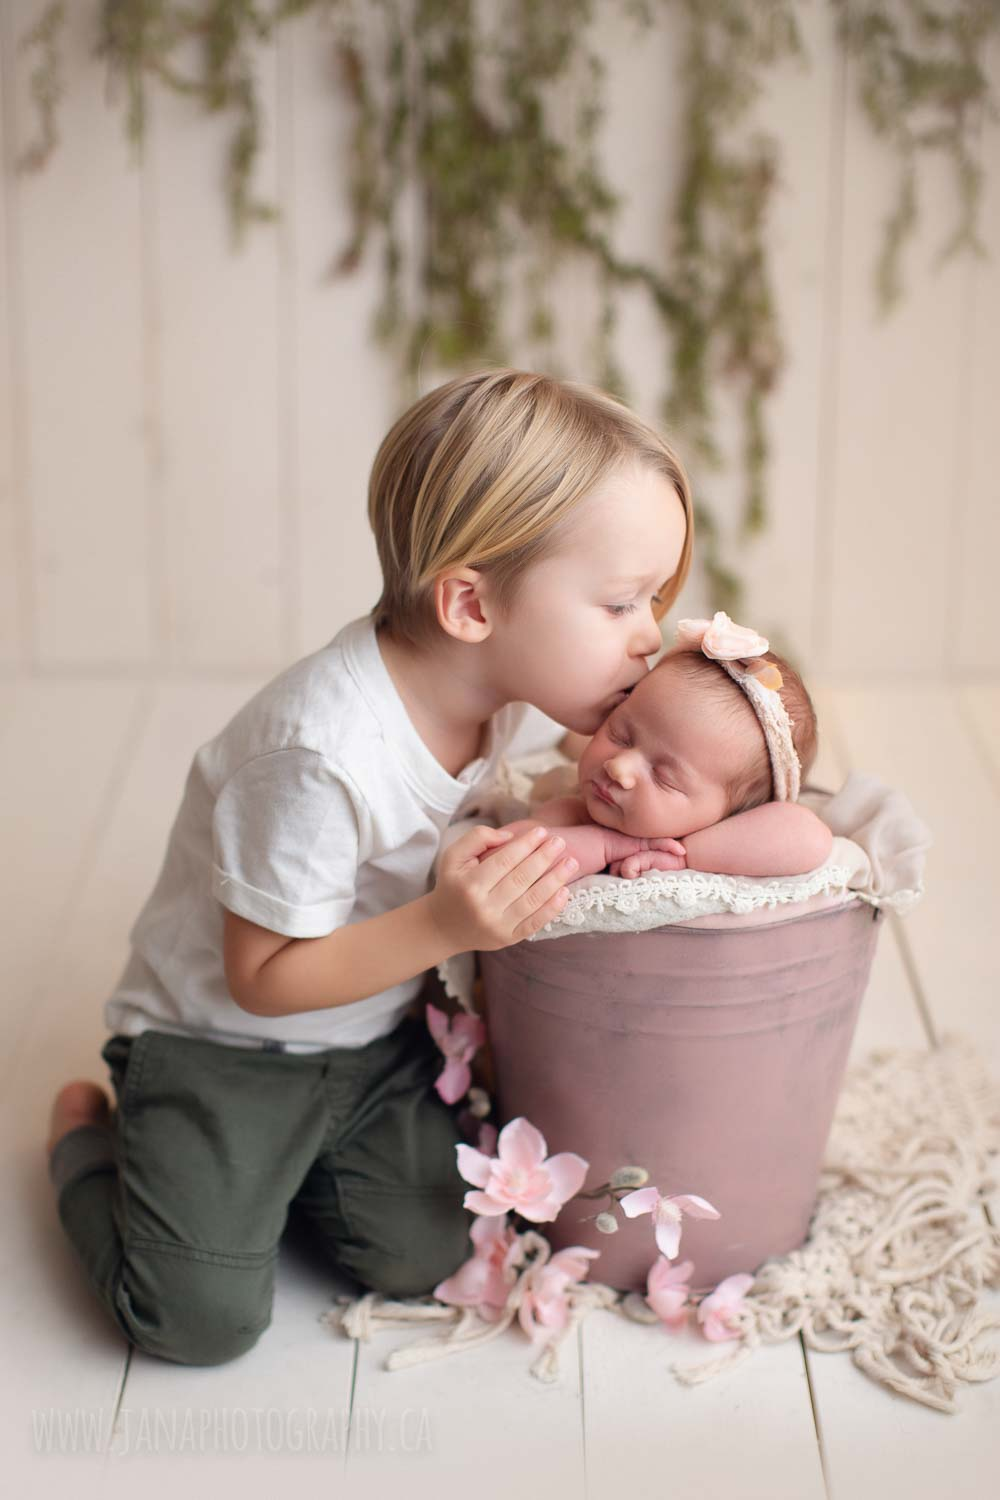 baby brother is kissing newborn girl sister in a pink bucket